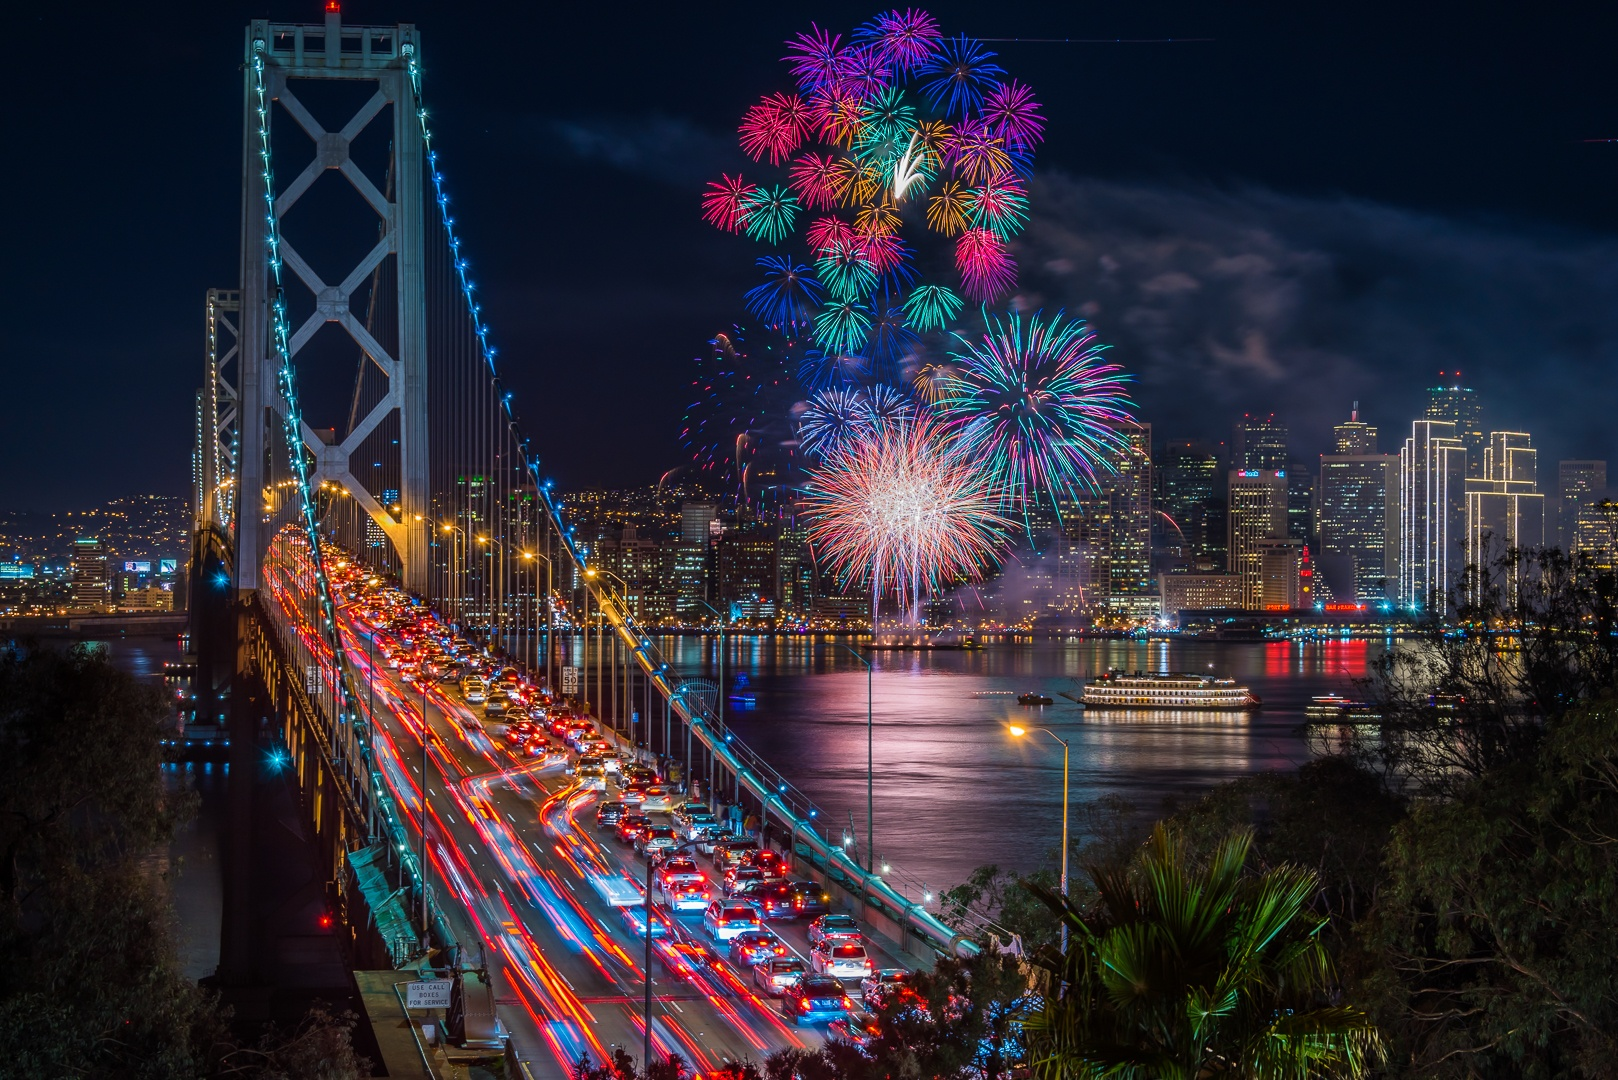 10 Inspirational New Year's Resolutions from the 500px Community